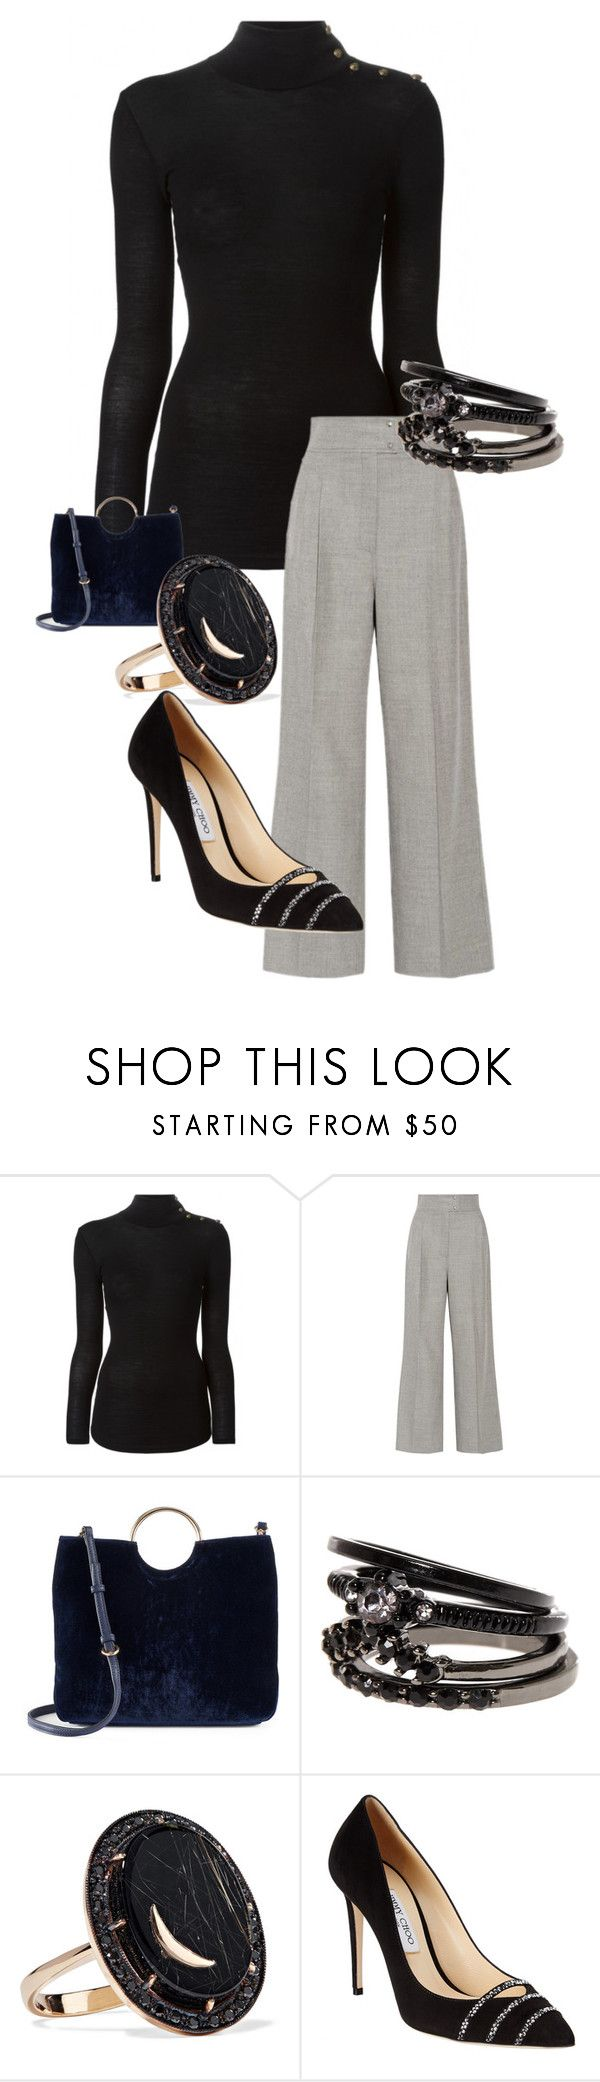 """Evening."" by angelinascards on Polyvore featuring Balmain, Barbara Casasola, LC Lauren Conrad, Andrea Fohrman and Jimmy Choo"